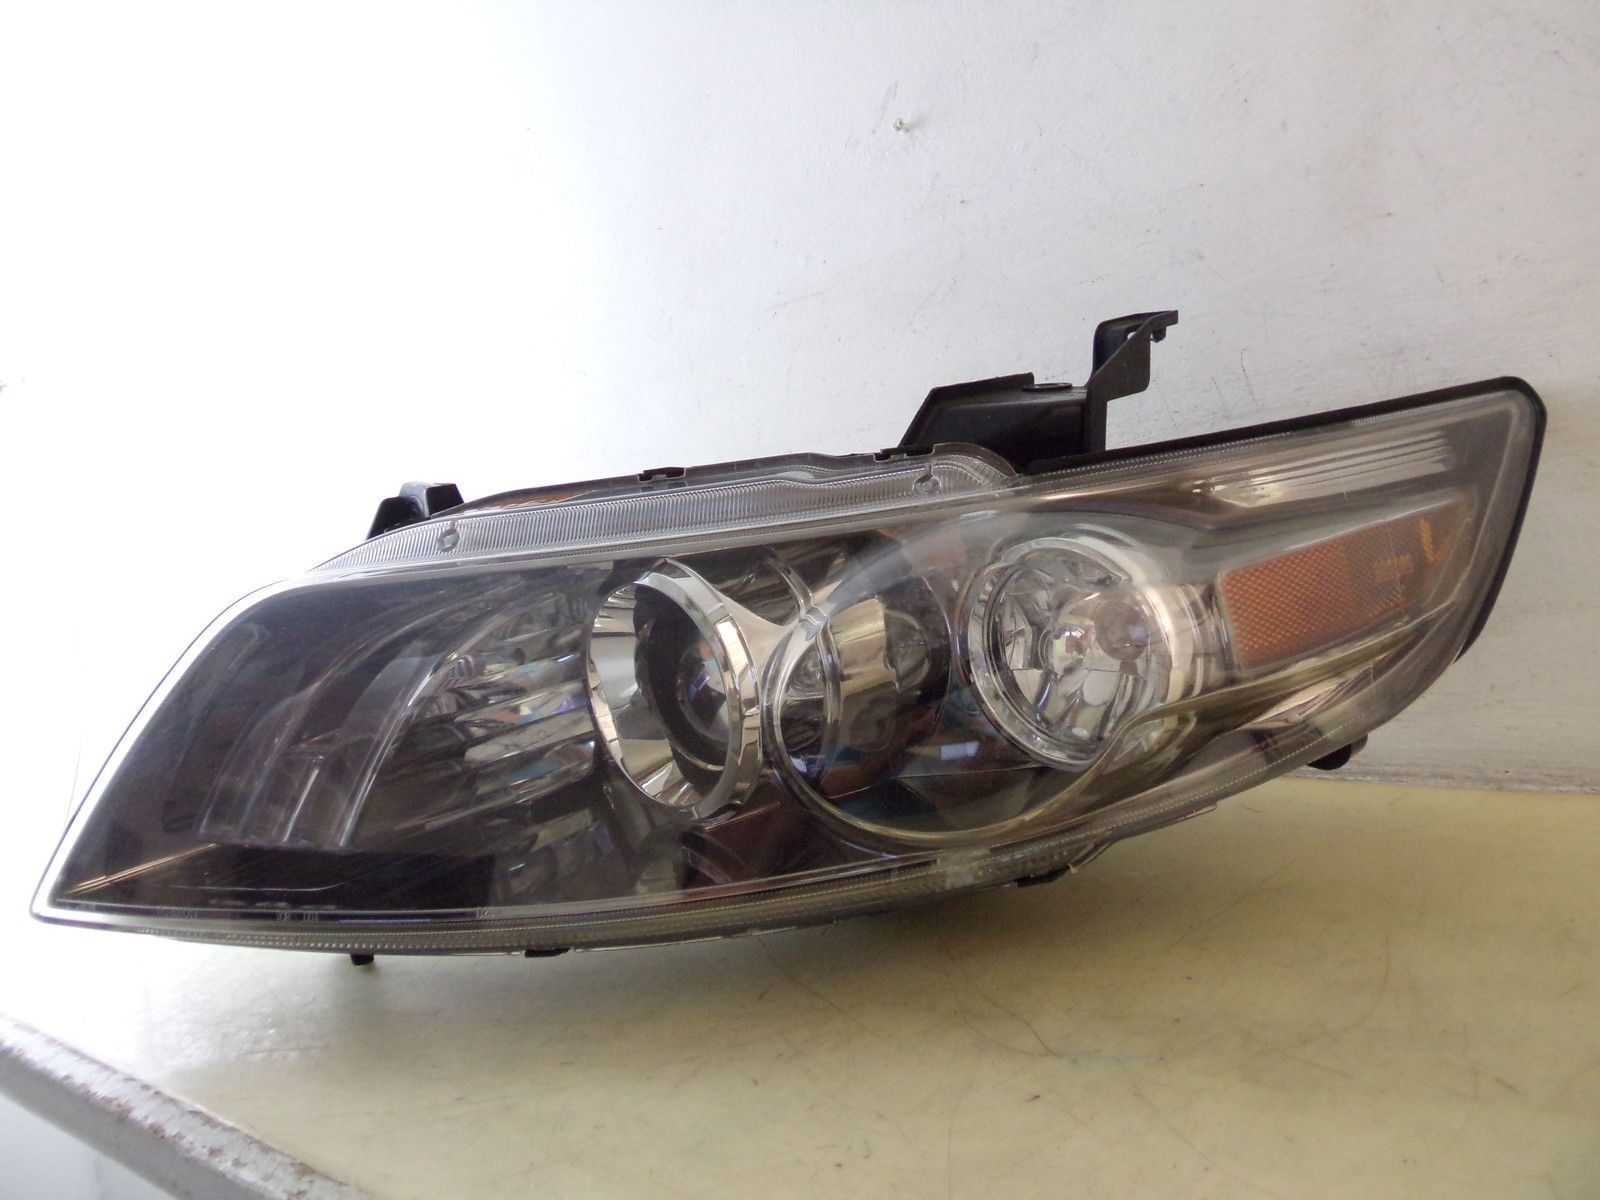 Primary image for 2005 2006 2007 2008 INFINITI FX35 FX45 SPORT LH XENON HID HEADLIGHT OEM 318